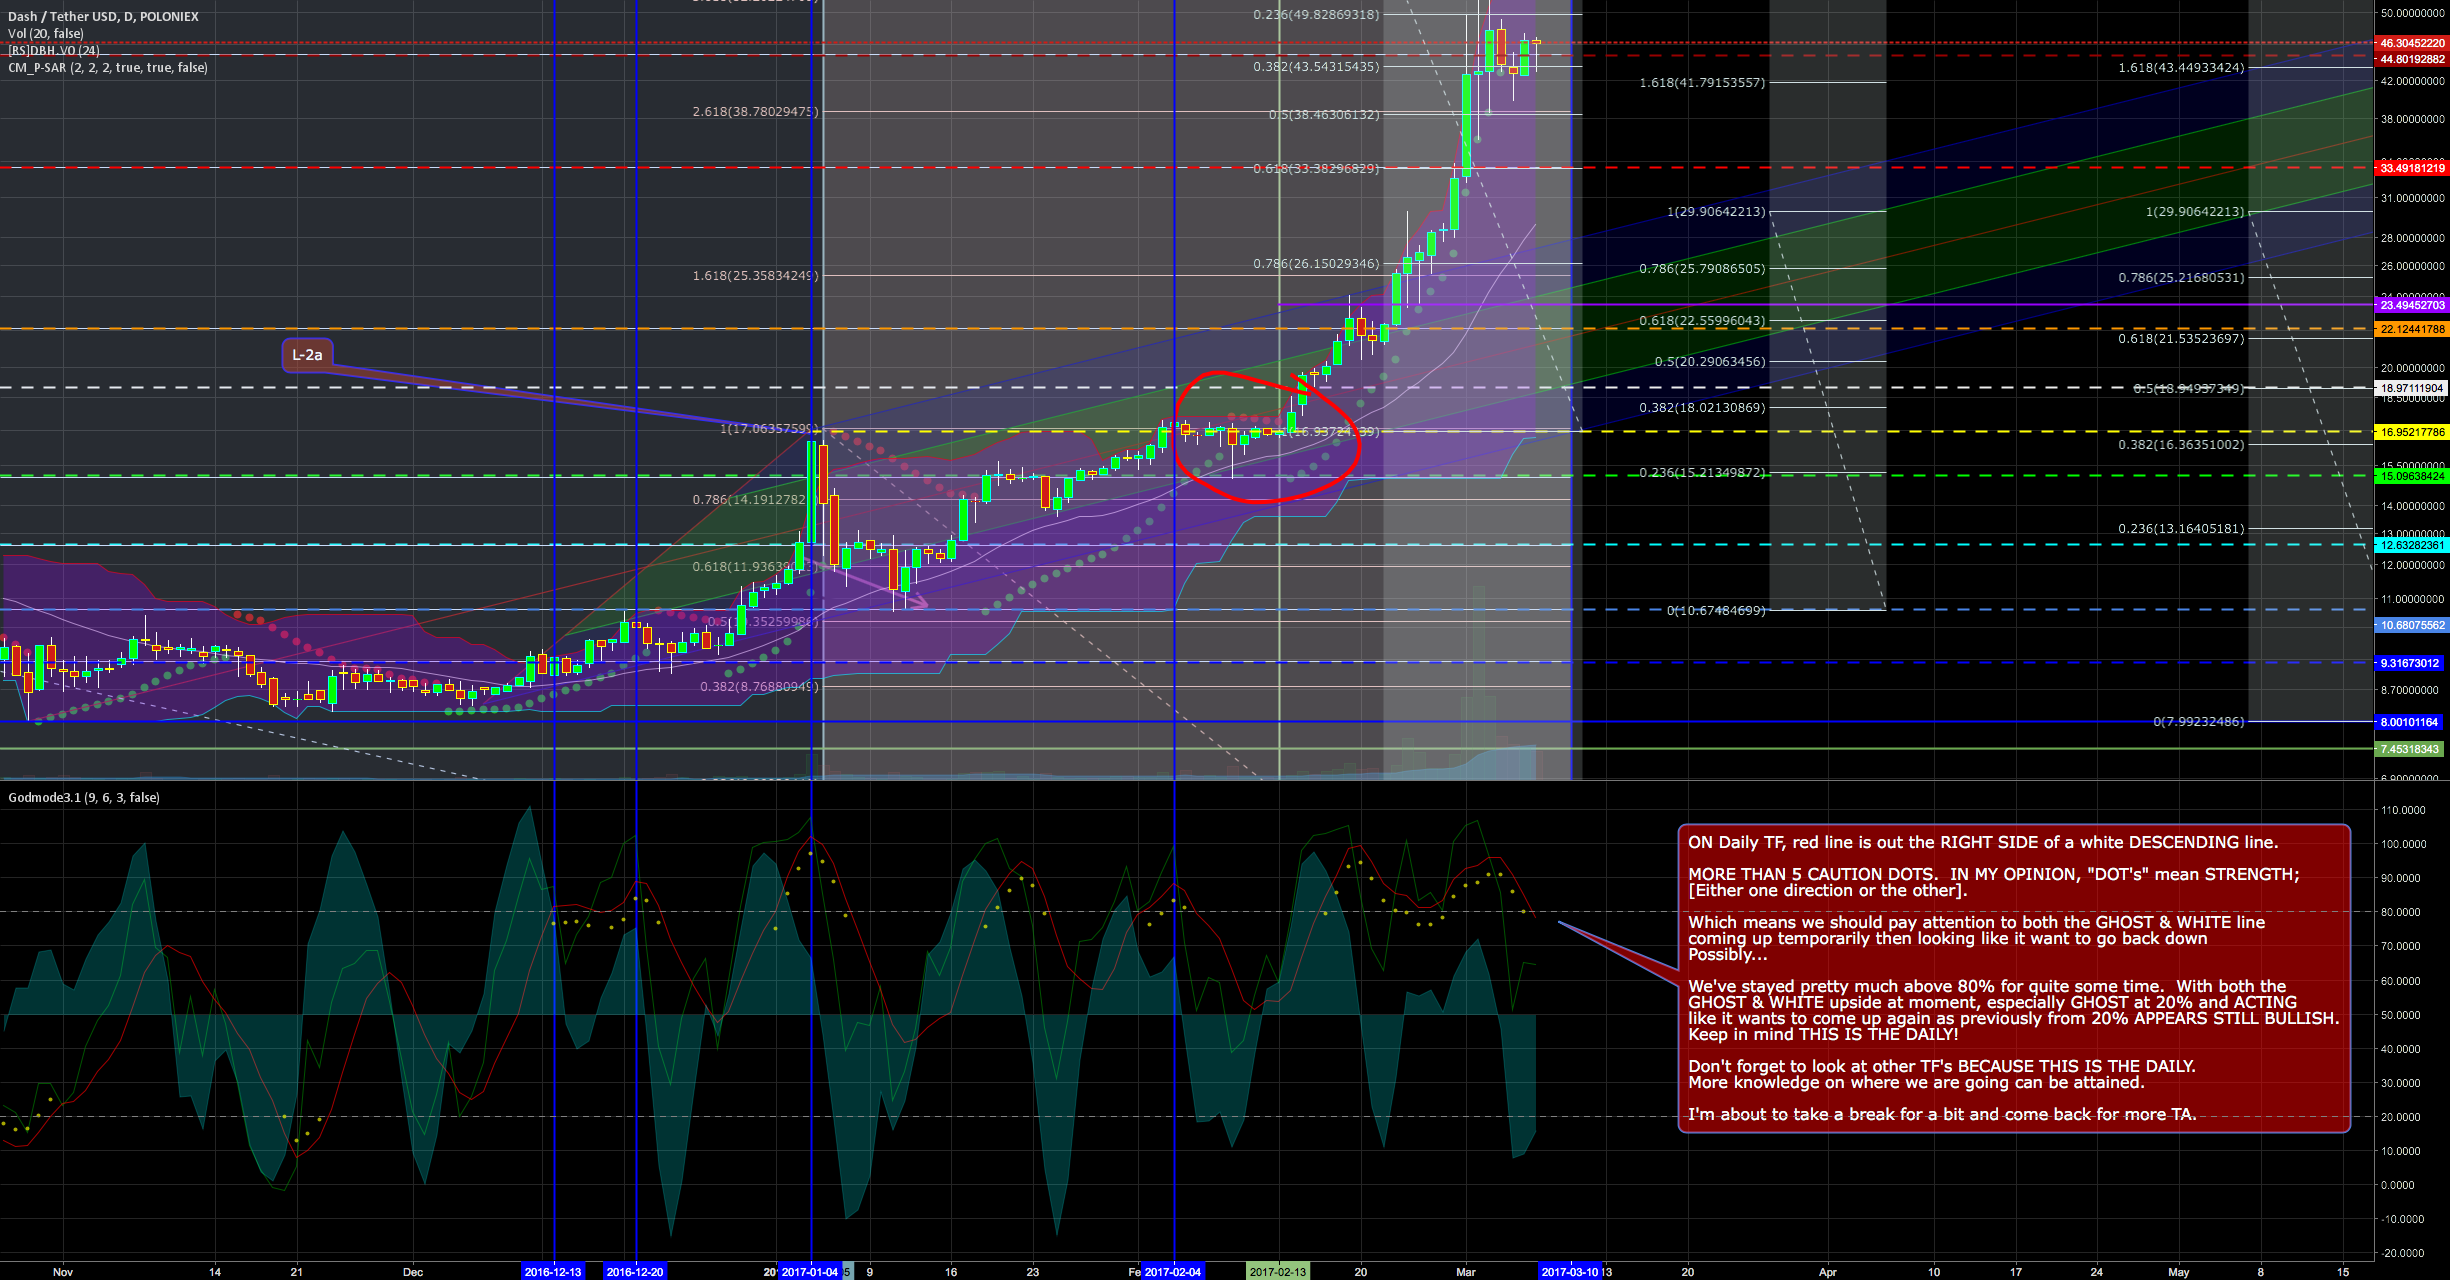 I'm NEUTRAL AT MOMENT till more TA. Pasted below for easier view